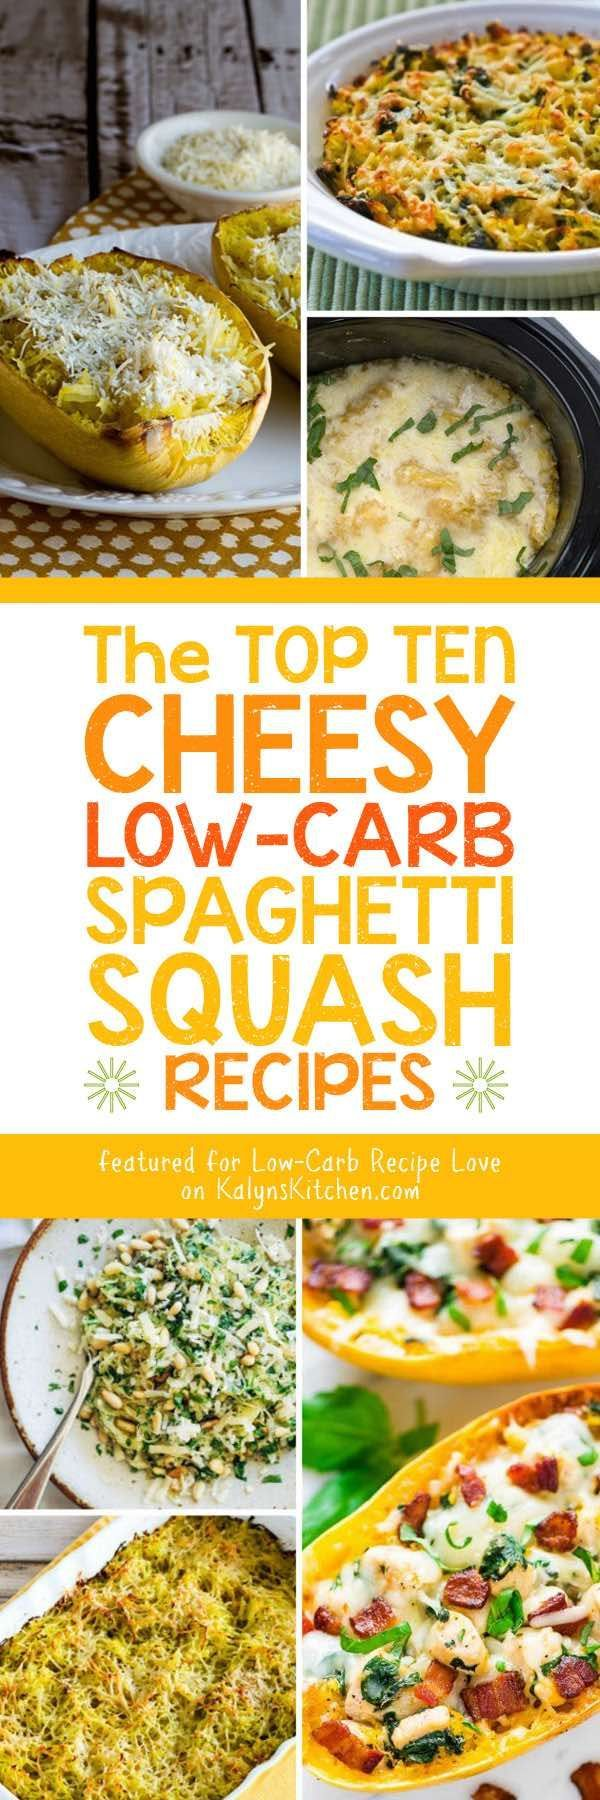 The Top Ten Low-Carb Cheesy Spaghetti Squash Recipes featured on KalynsKitchen.com